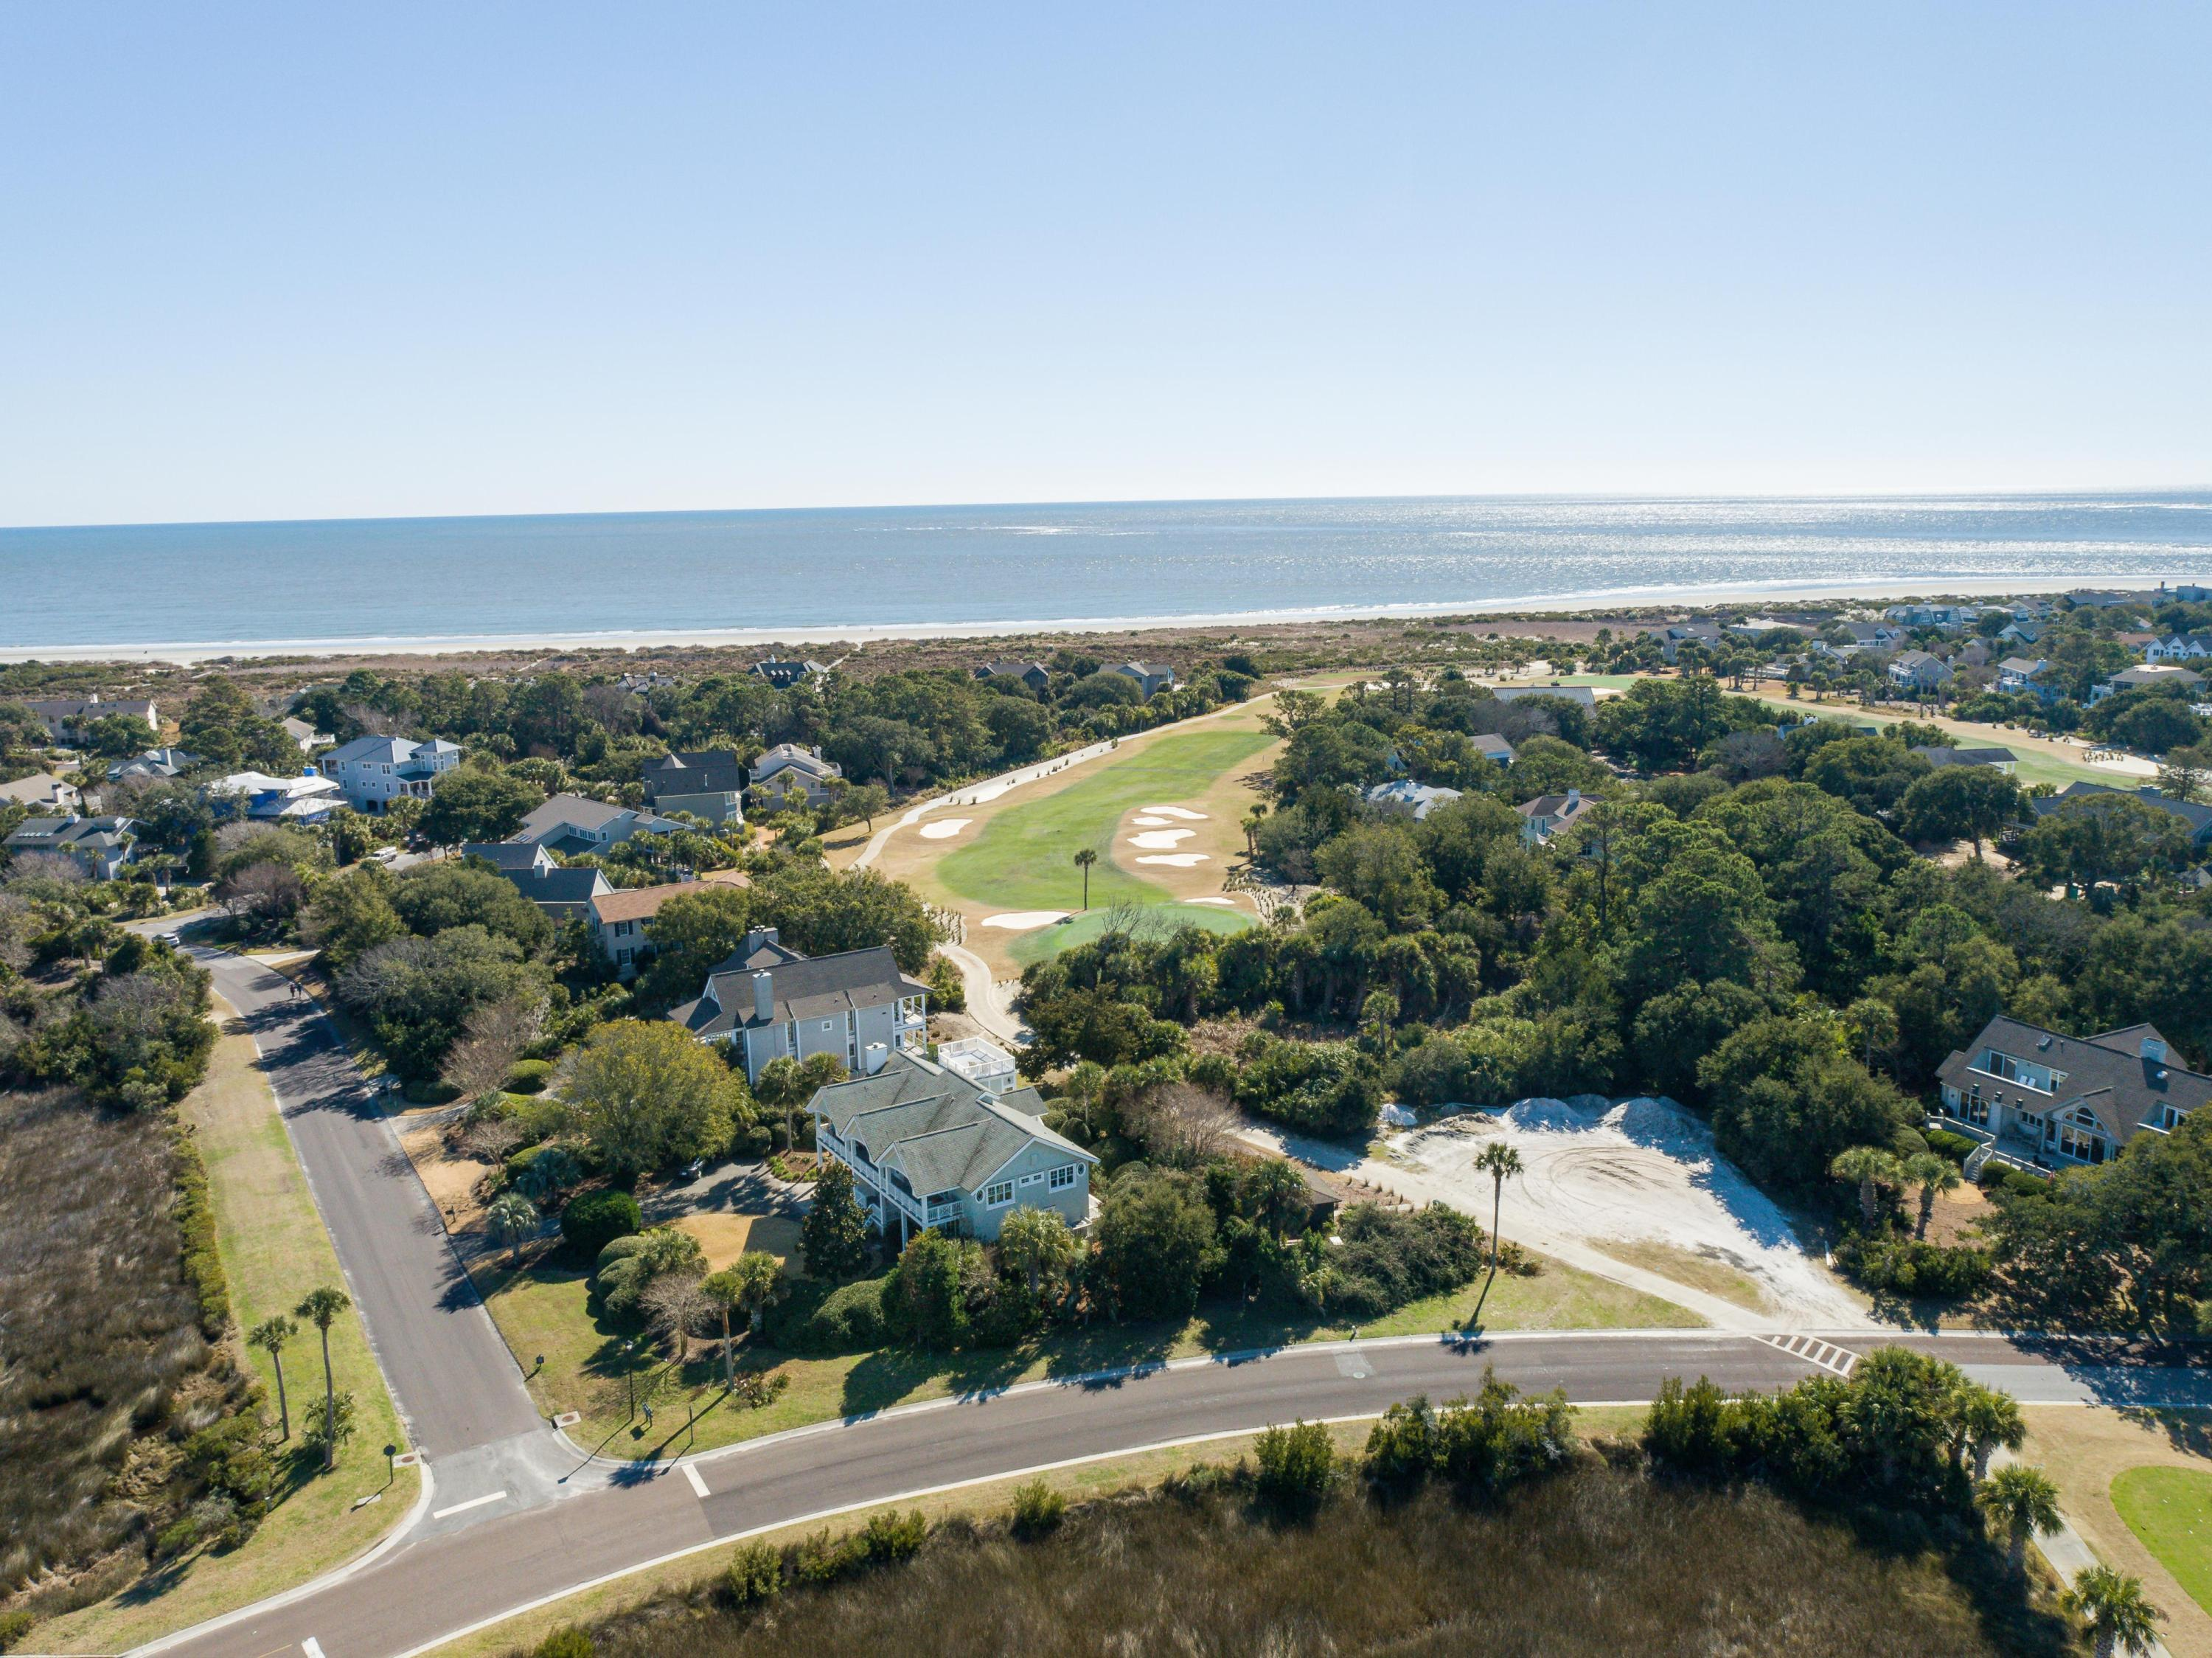 Seabrook Island Homes For Sale - 2335 Oyster Catcher, Seabrook Island, SC - 0